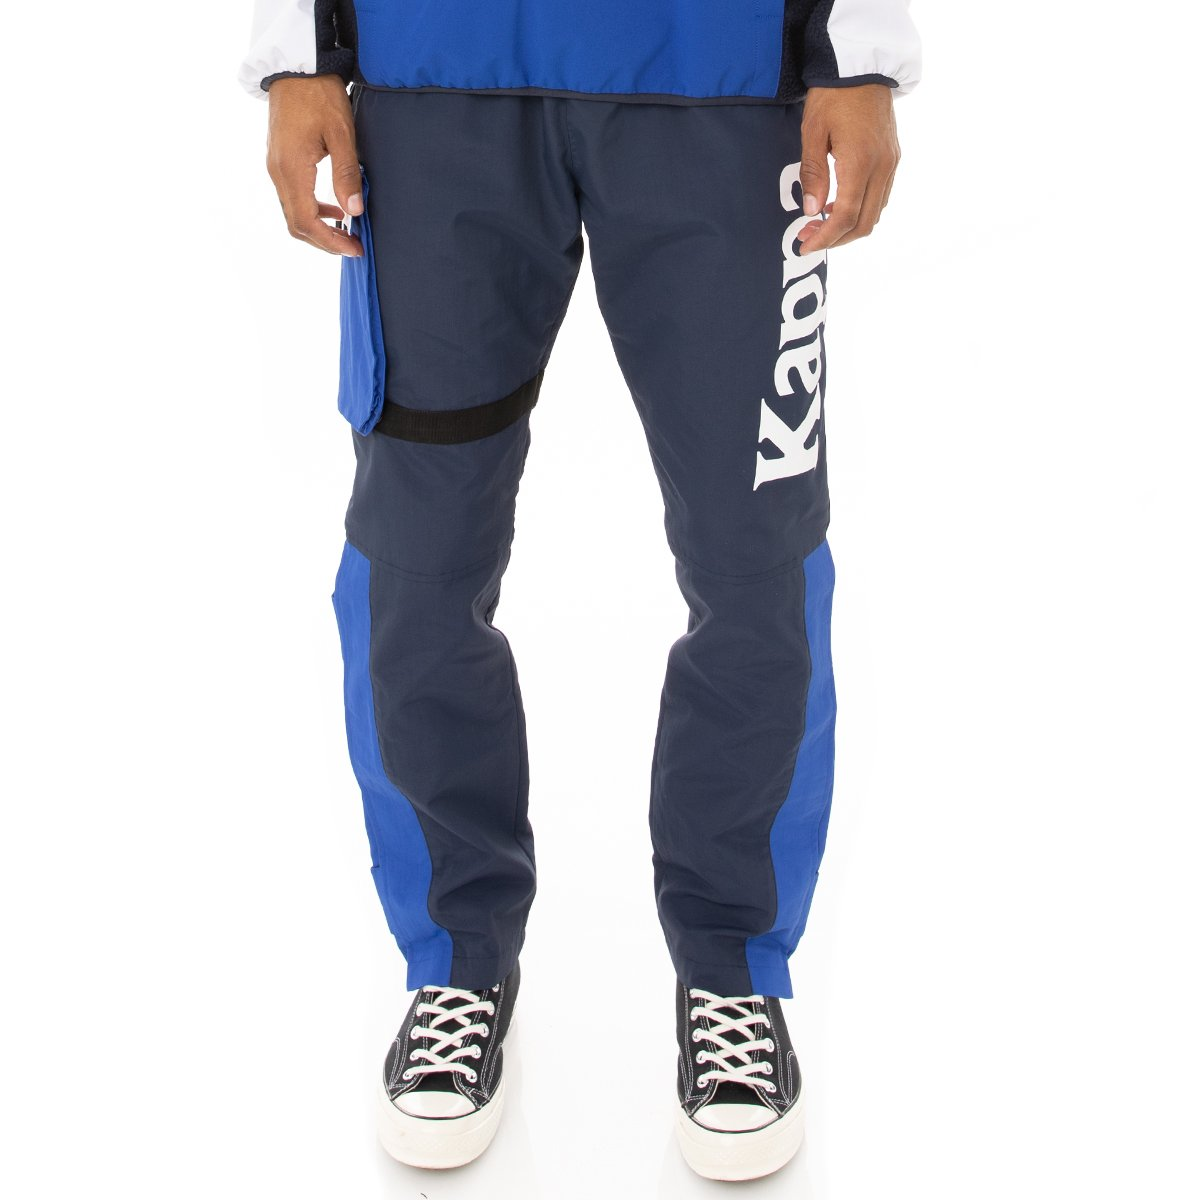 KAPPA Authentic Hike Utility Bender 2 Woven Pants